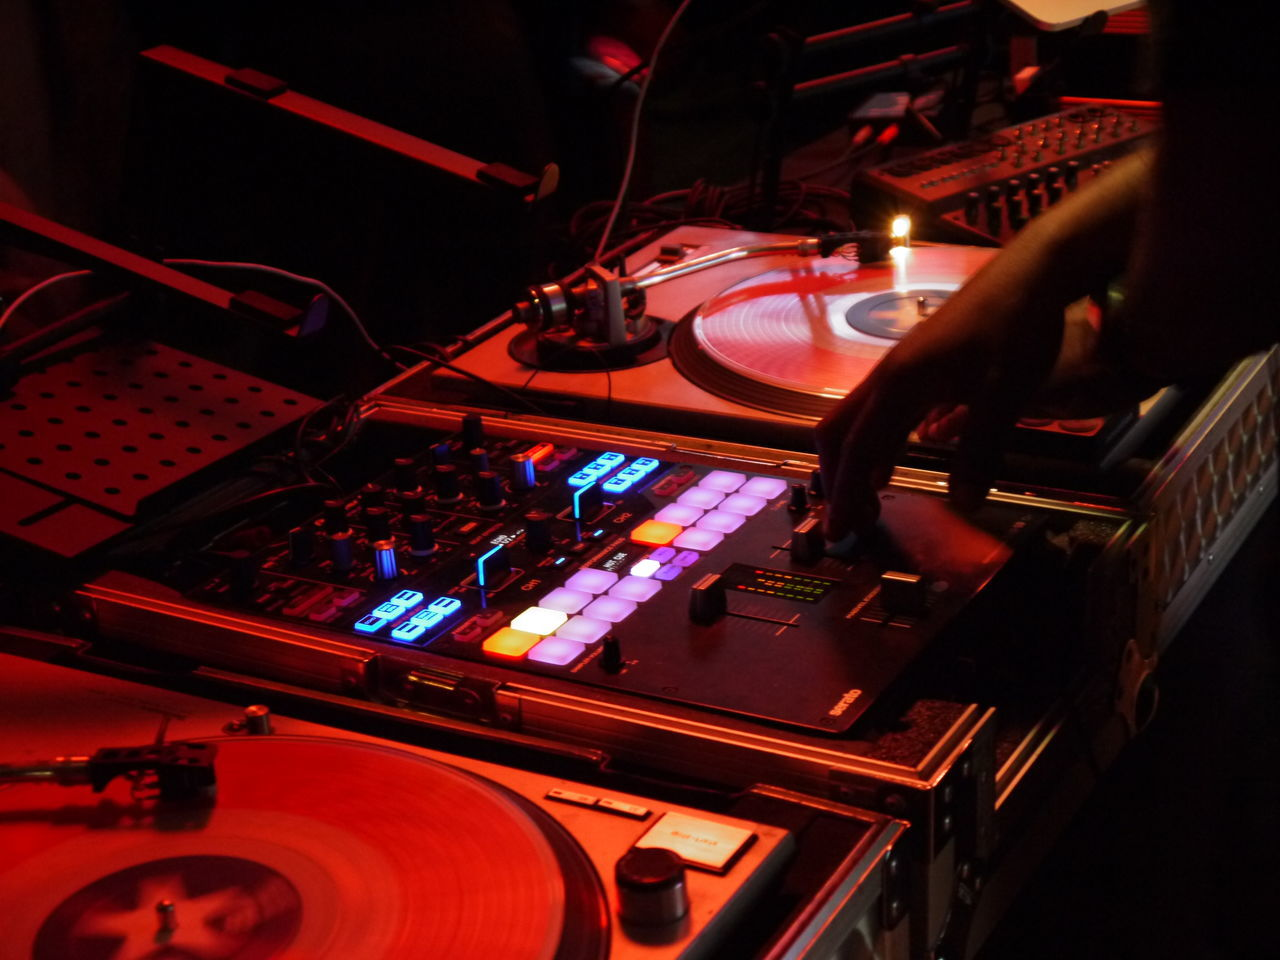 dj ease spinning Music Dj Nightclub Club Dj Control Nightlife Red Turntable Listening Technology Disco Dancing Sound Mixer Record Indoors  Mixing Performance Control Panel People Illuminated One Person djease Rochesterny  Rochester Roctownlive Djalykhan Butapub